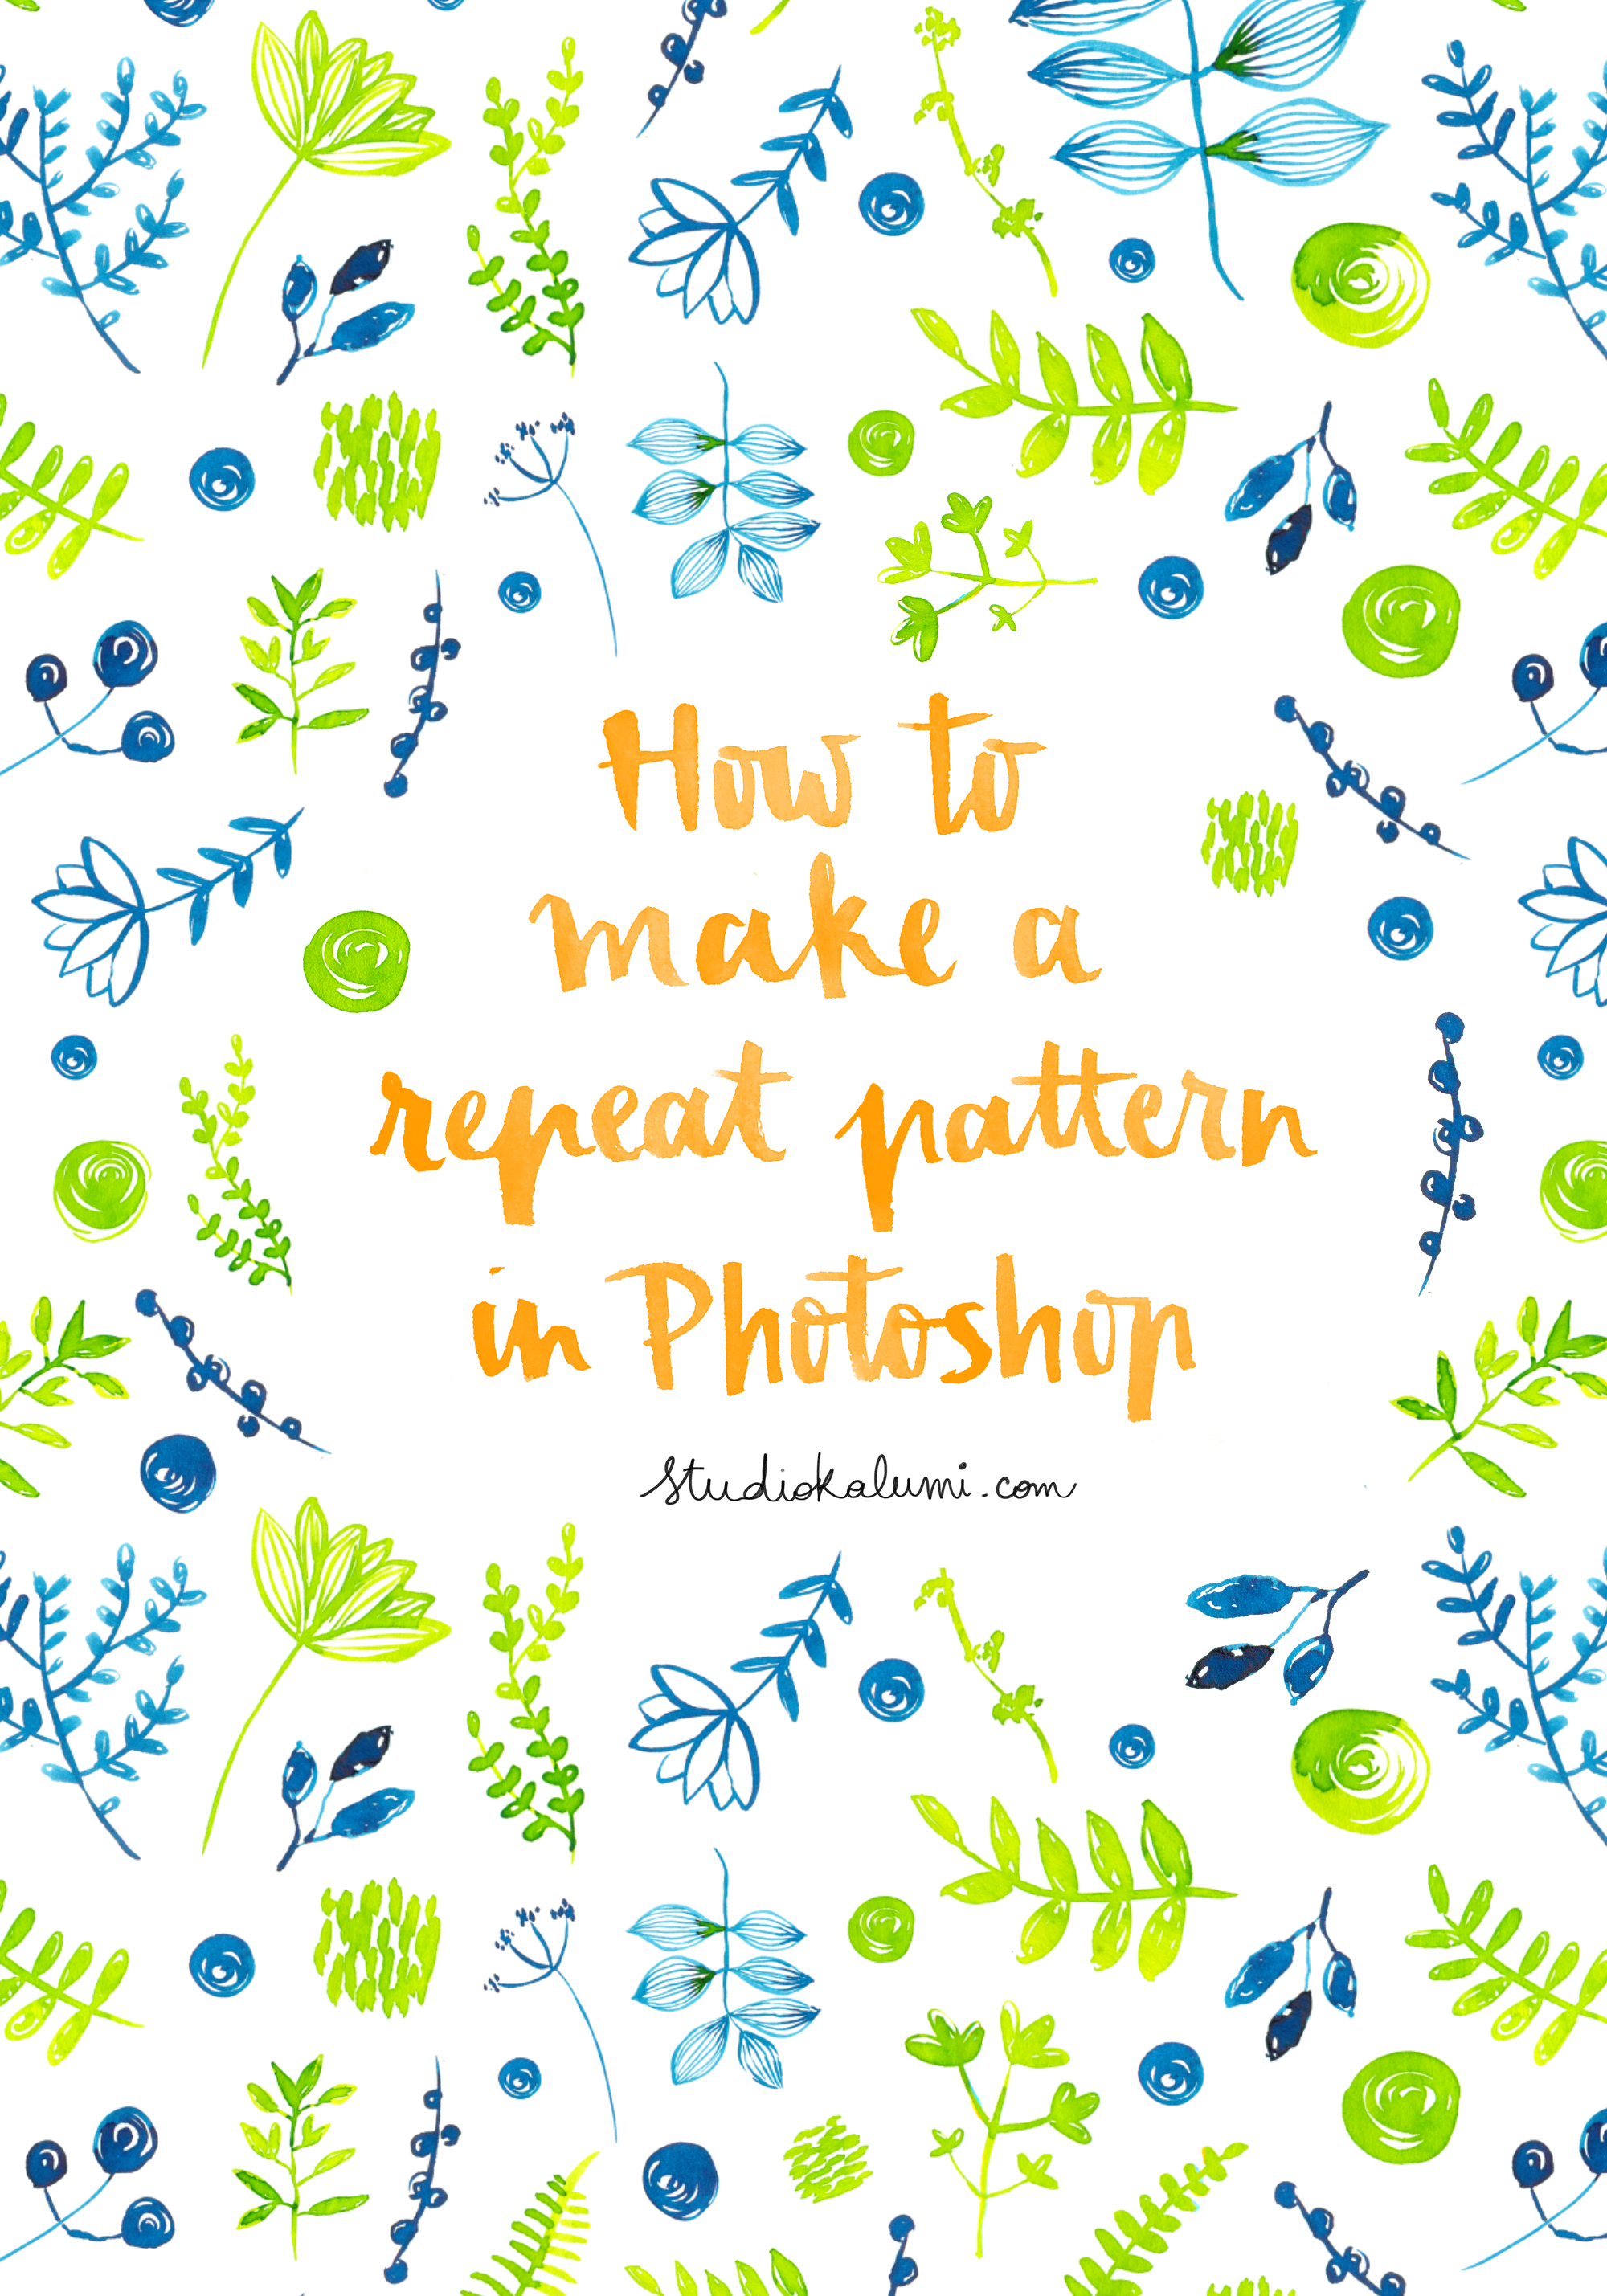 Tutorial #2: How To Make A Repeat Pattern In Photoshop